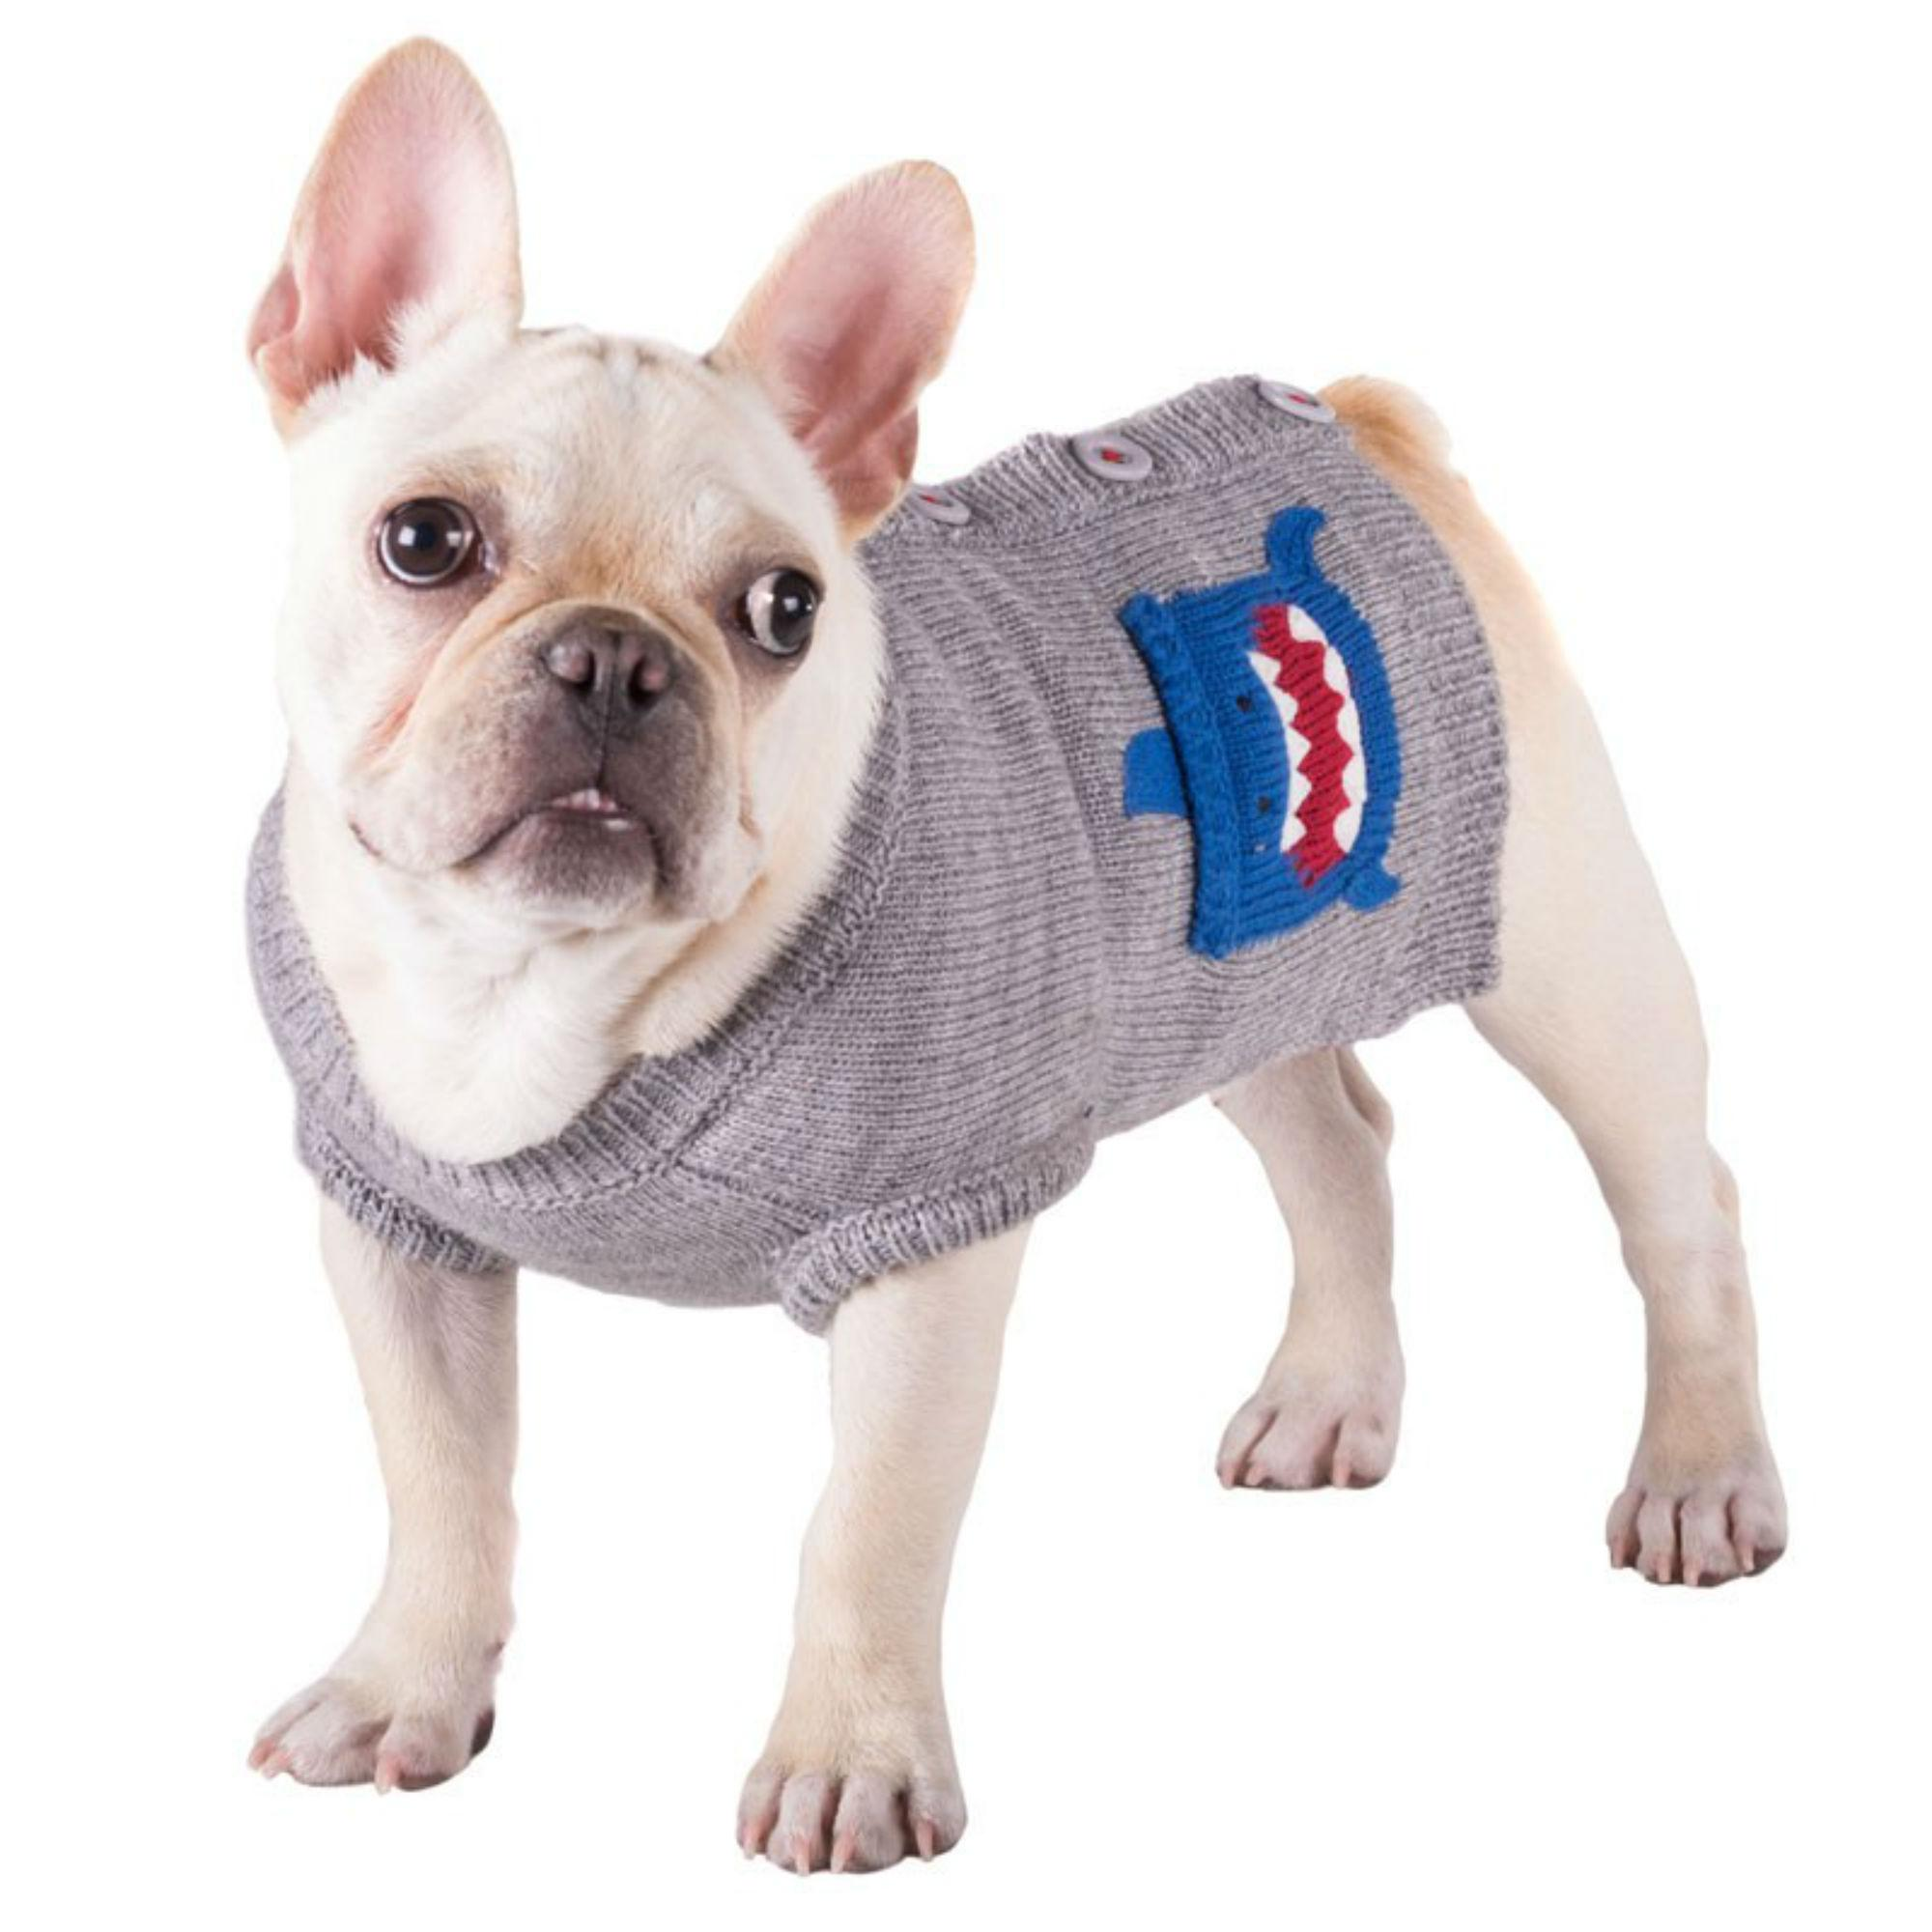 Worthy Dog Shark Dog Cardigan - Gray